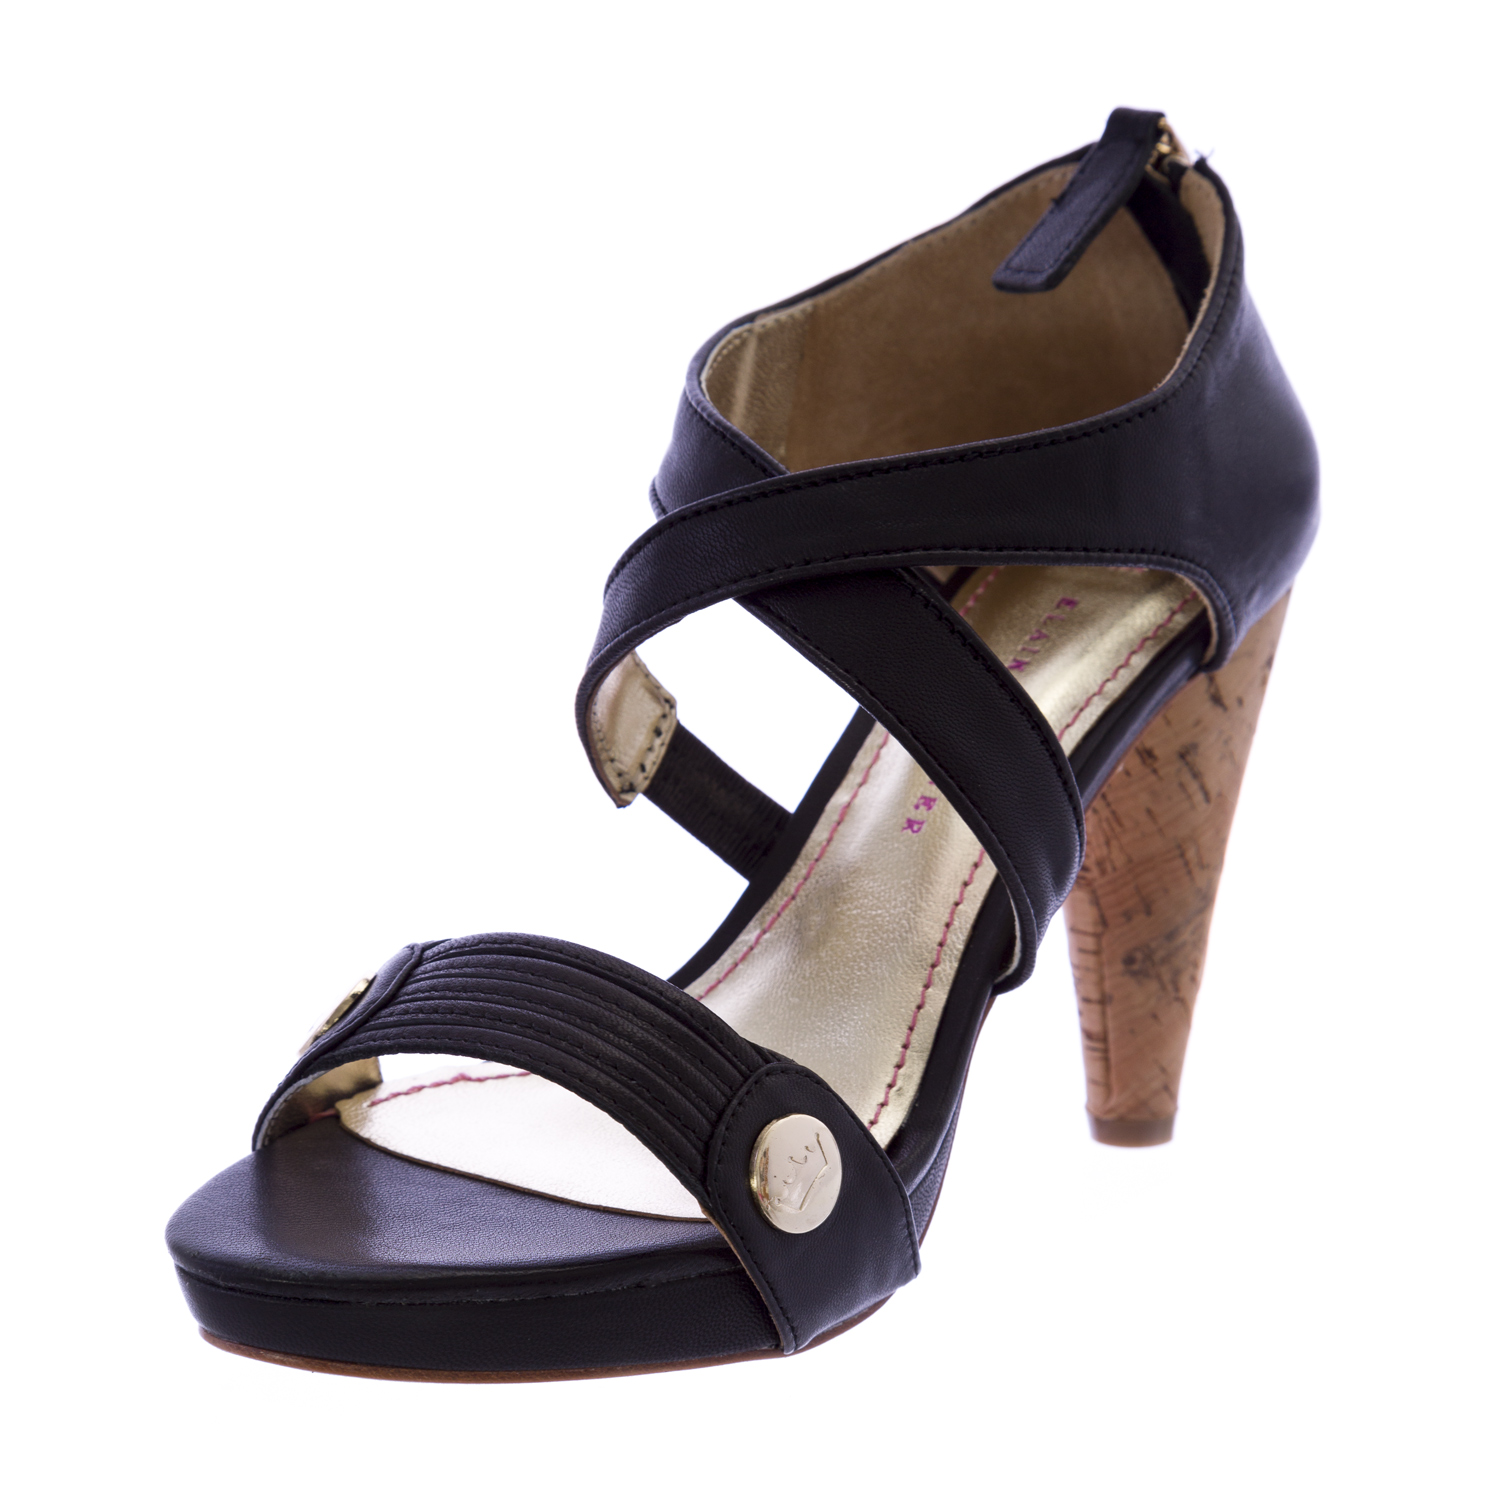 ELAINE TURNER Claudia Strappy Bamboo Heel Sandals Black